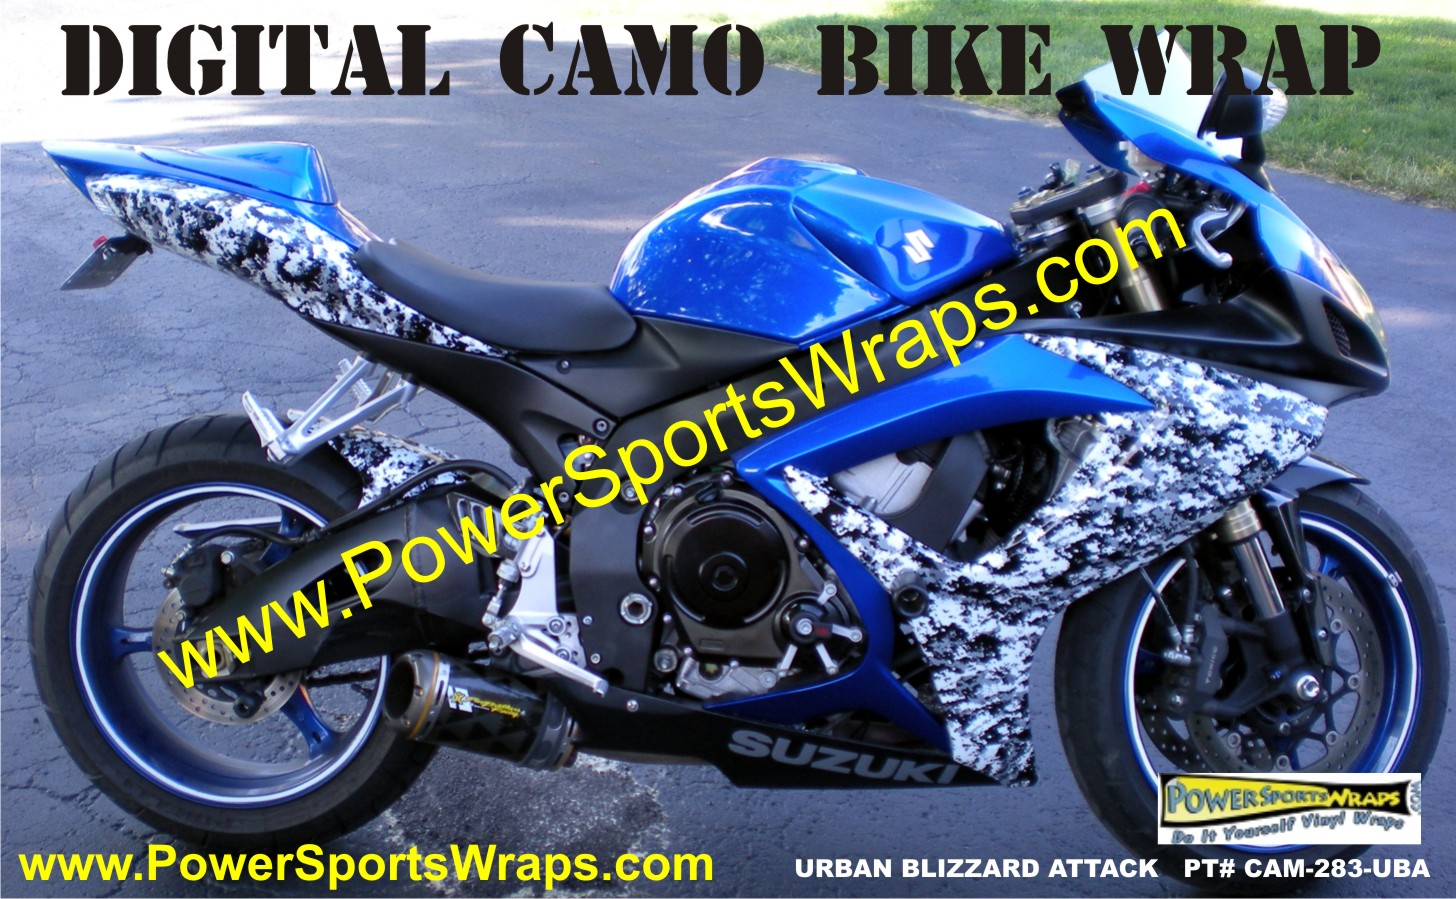 custom digital camo bike wrap from powersportswraps.com 814-838-6377